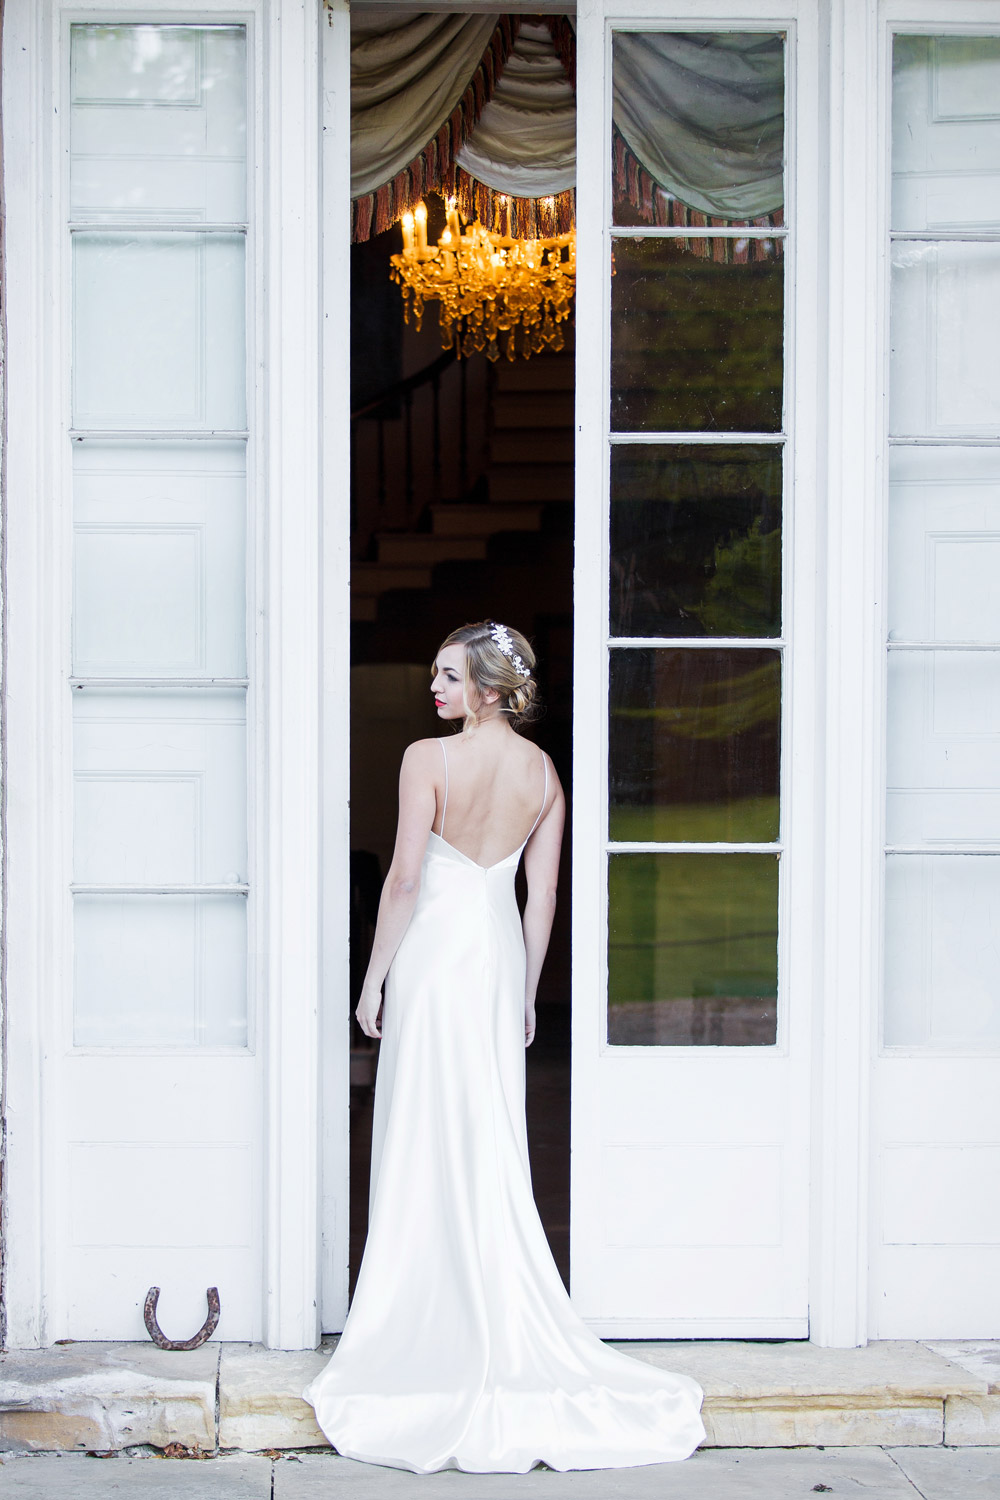 Back of the wedding dress